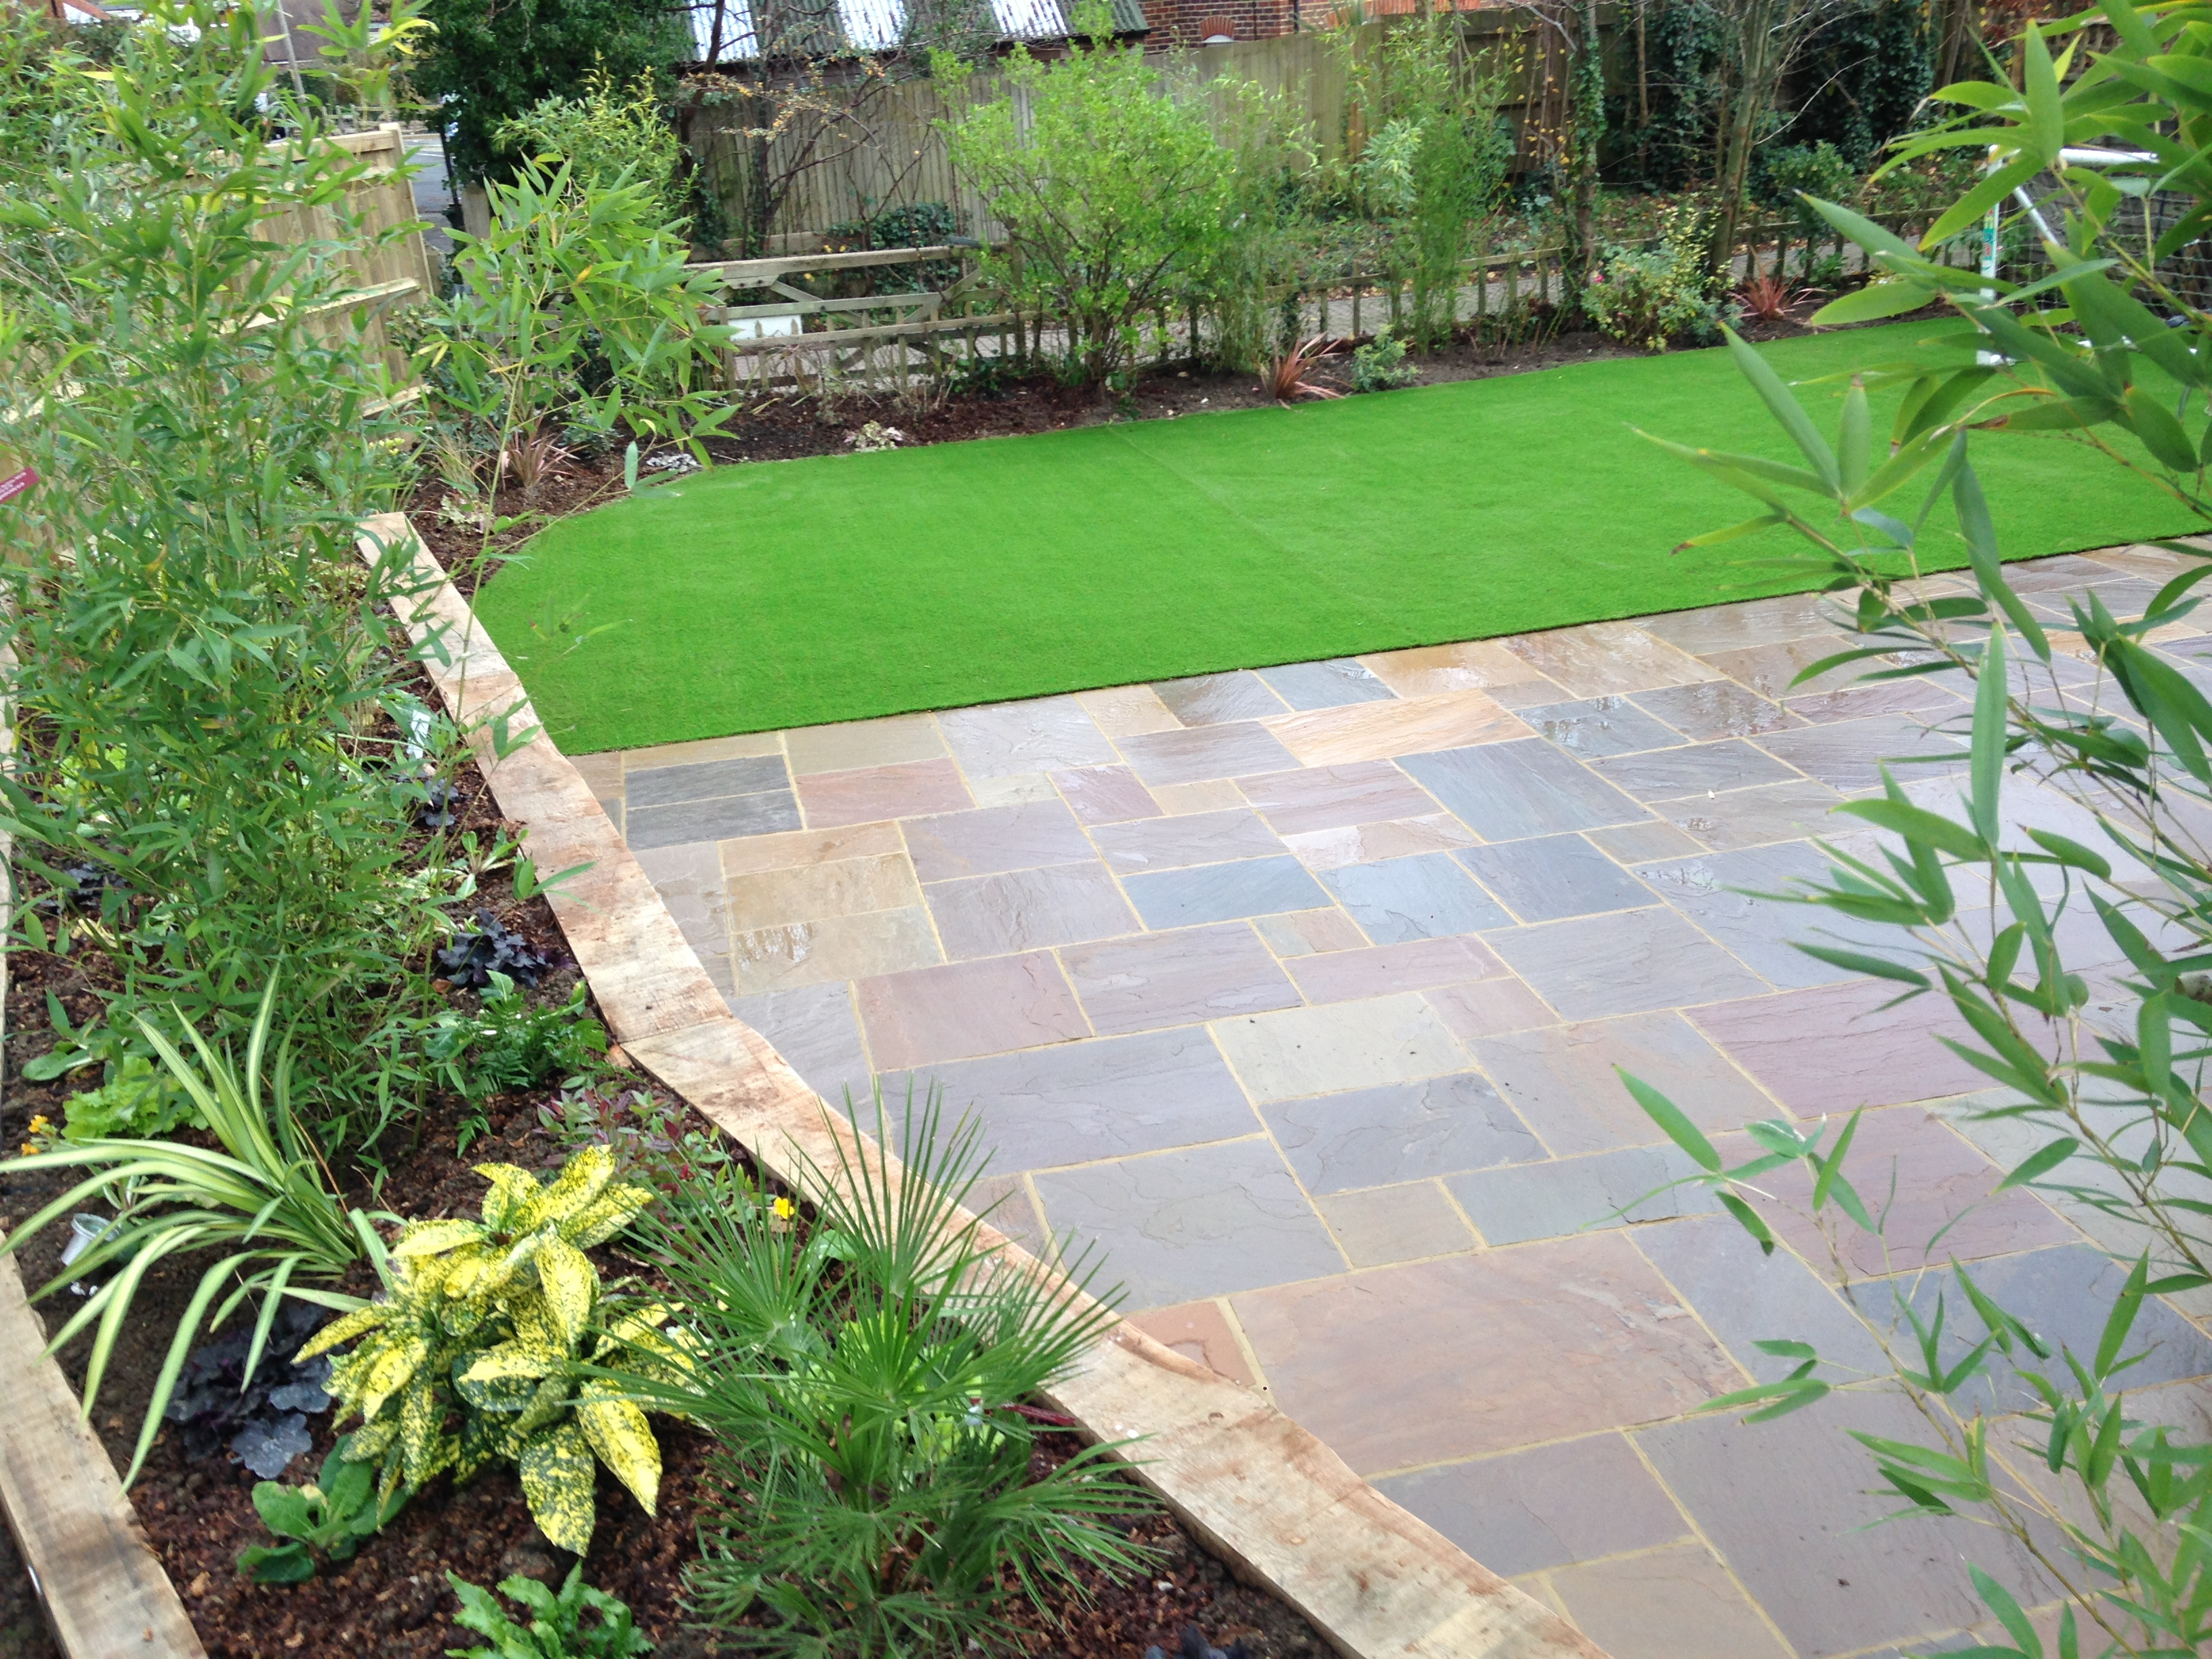 Garden design raised flowerbed boarder with large patio and artificial grass